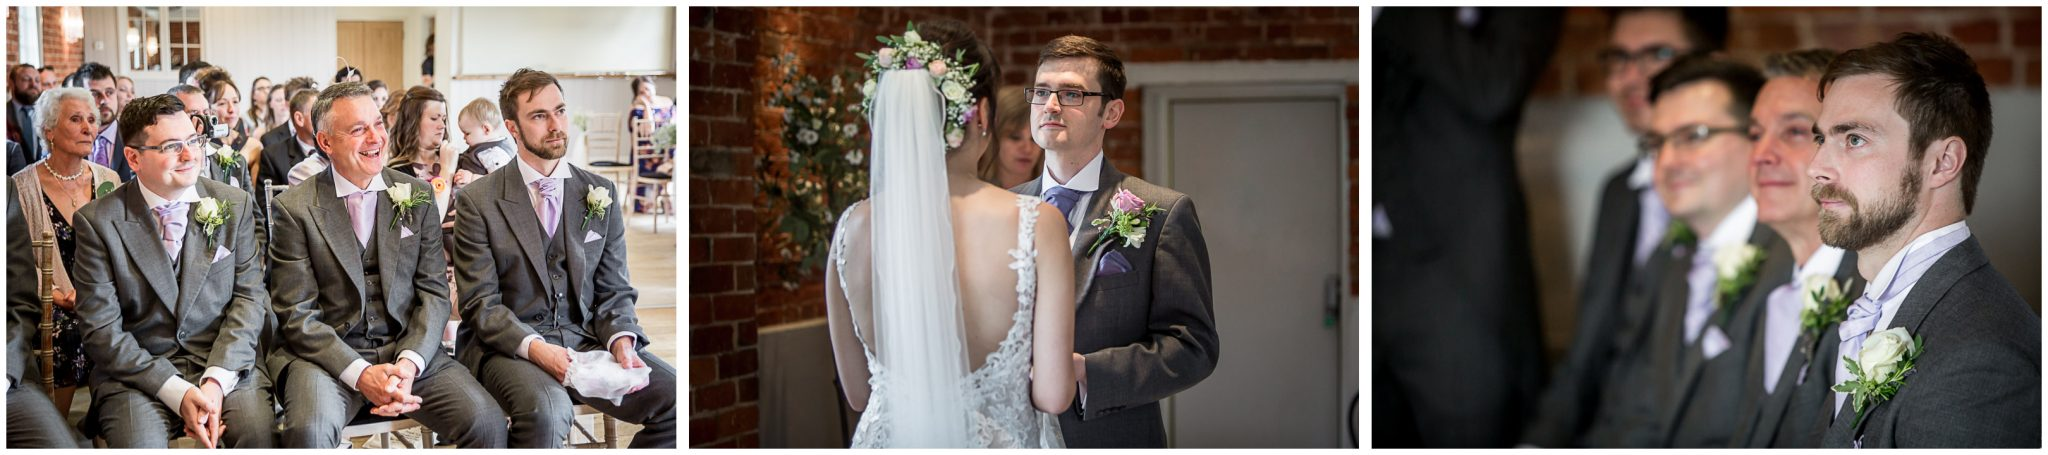 Sopley Mill wedding photography guests watch couple making vows